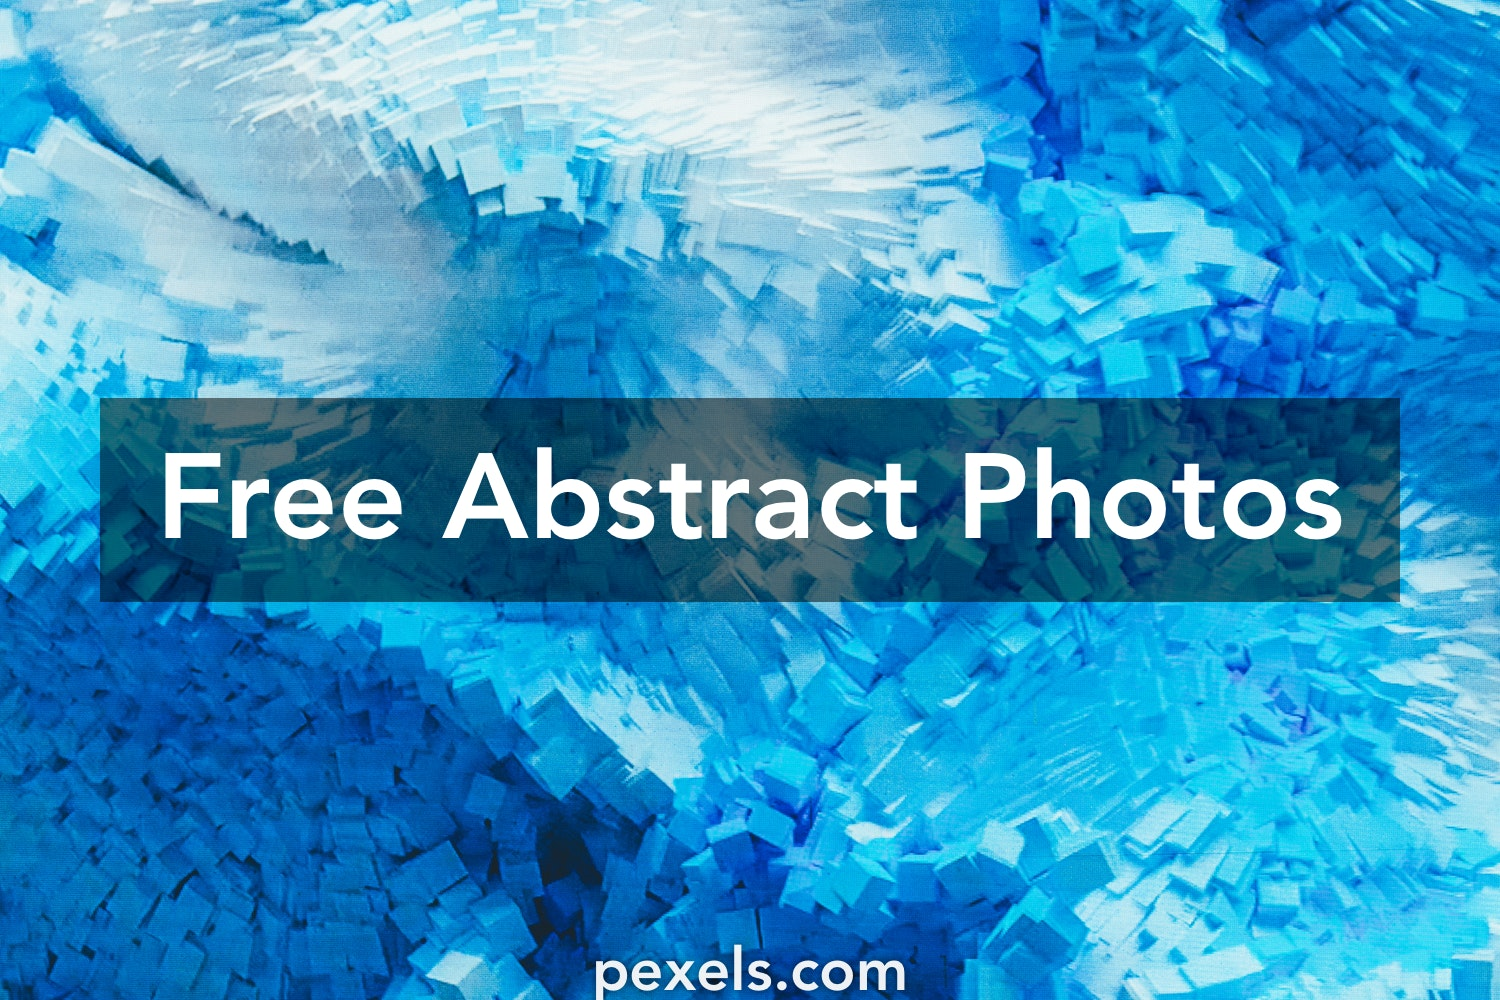 Abstract Images · Pexels · Free Stock Photos